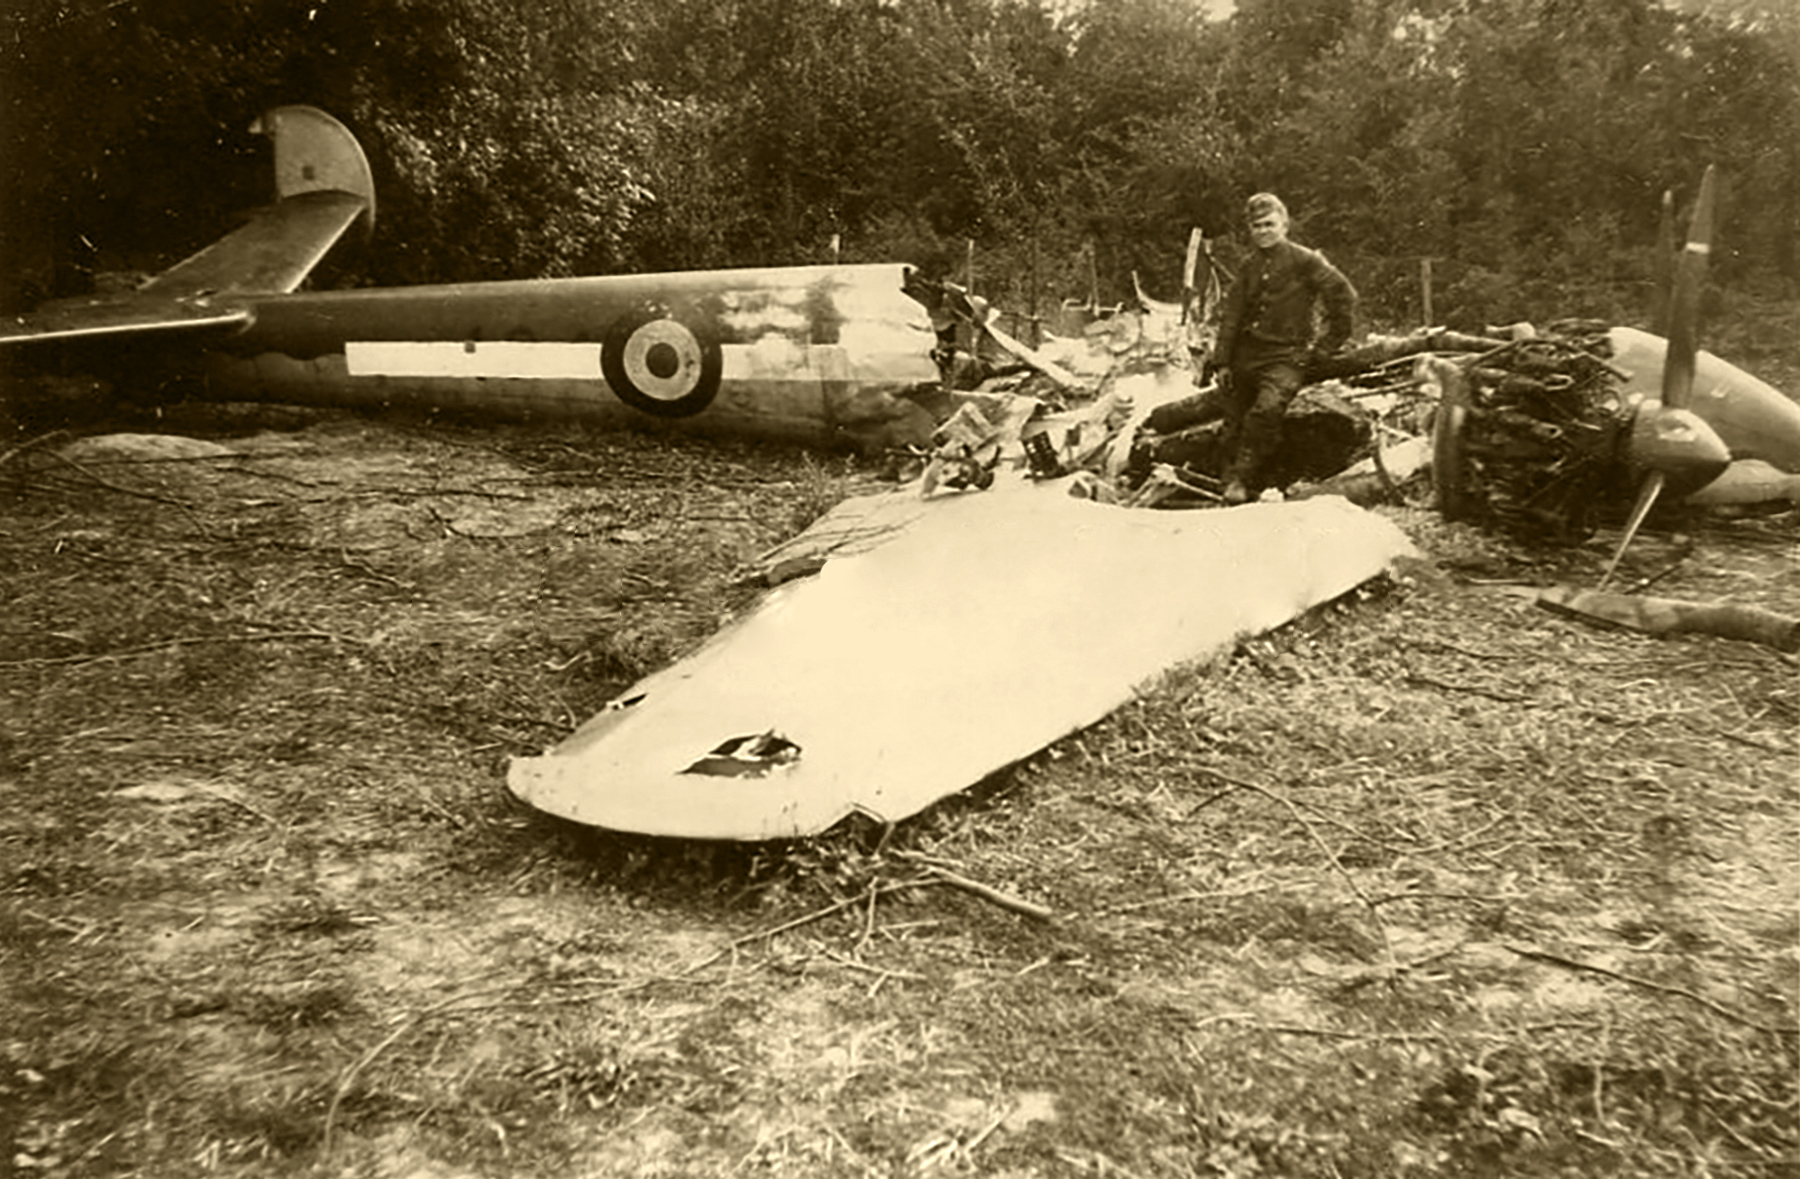 French Airforce Liore et Olivier LeO 451 sits abandoned after the fall of France June 1940 ebay 02